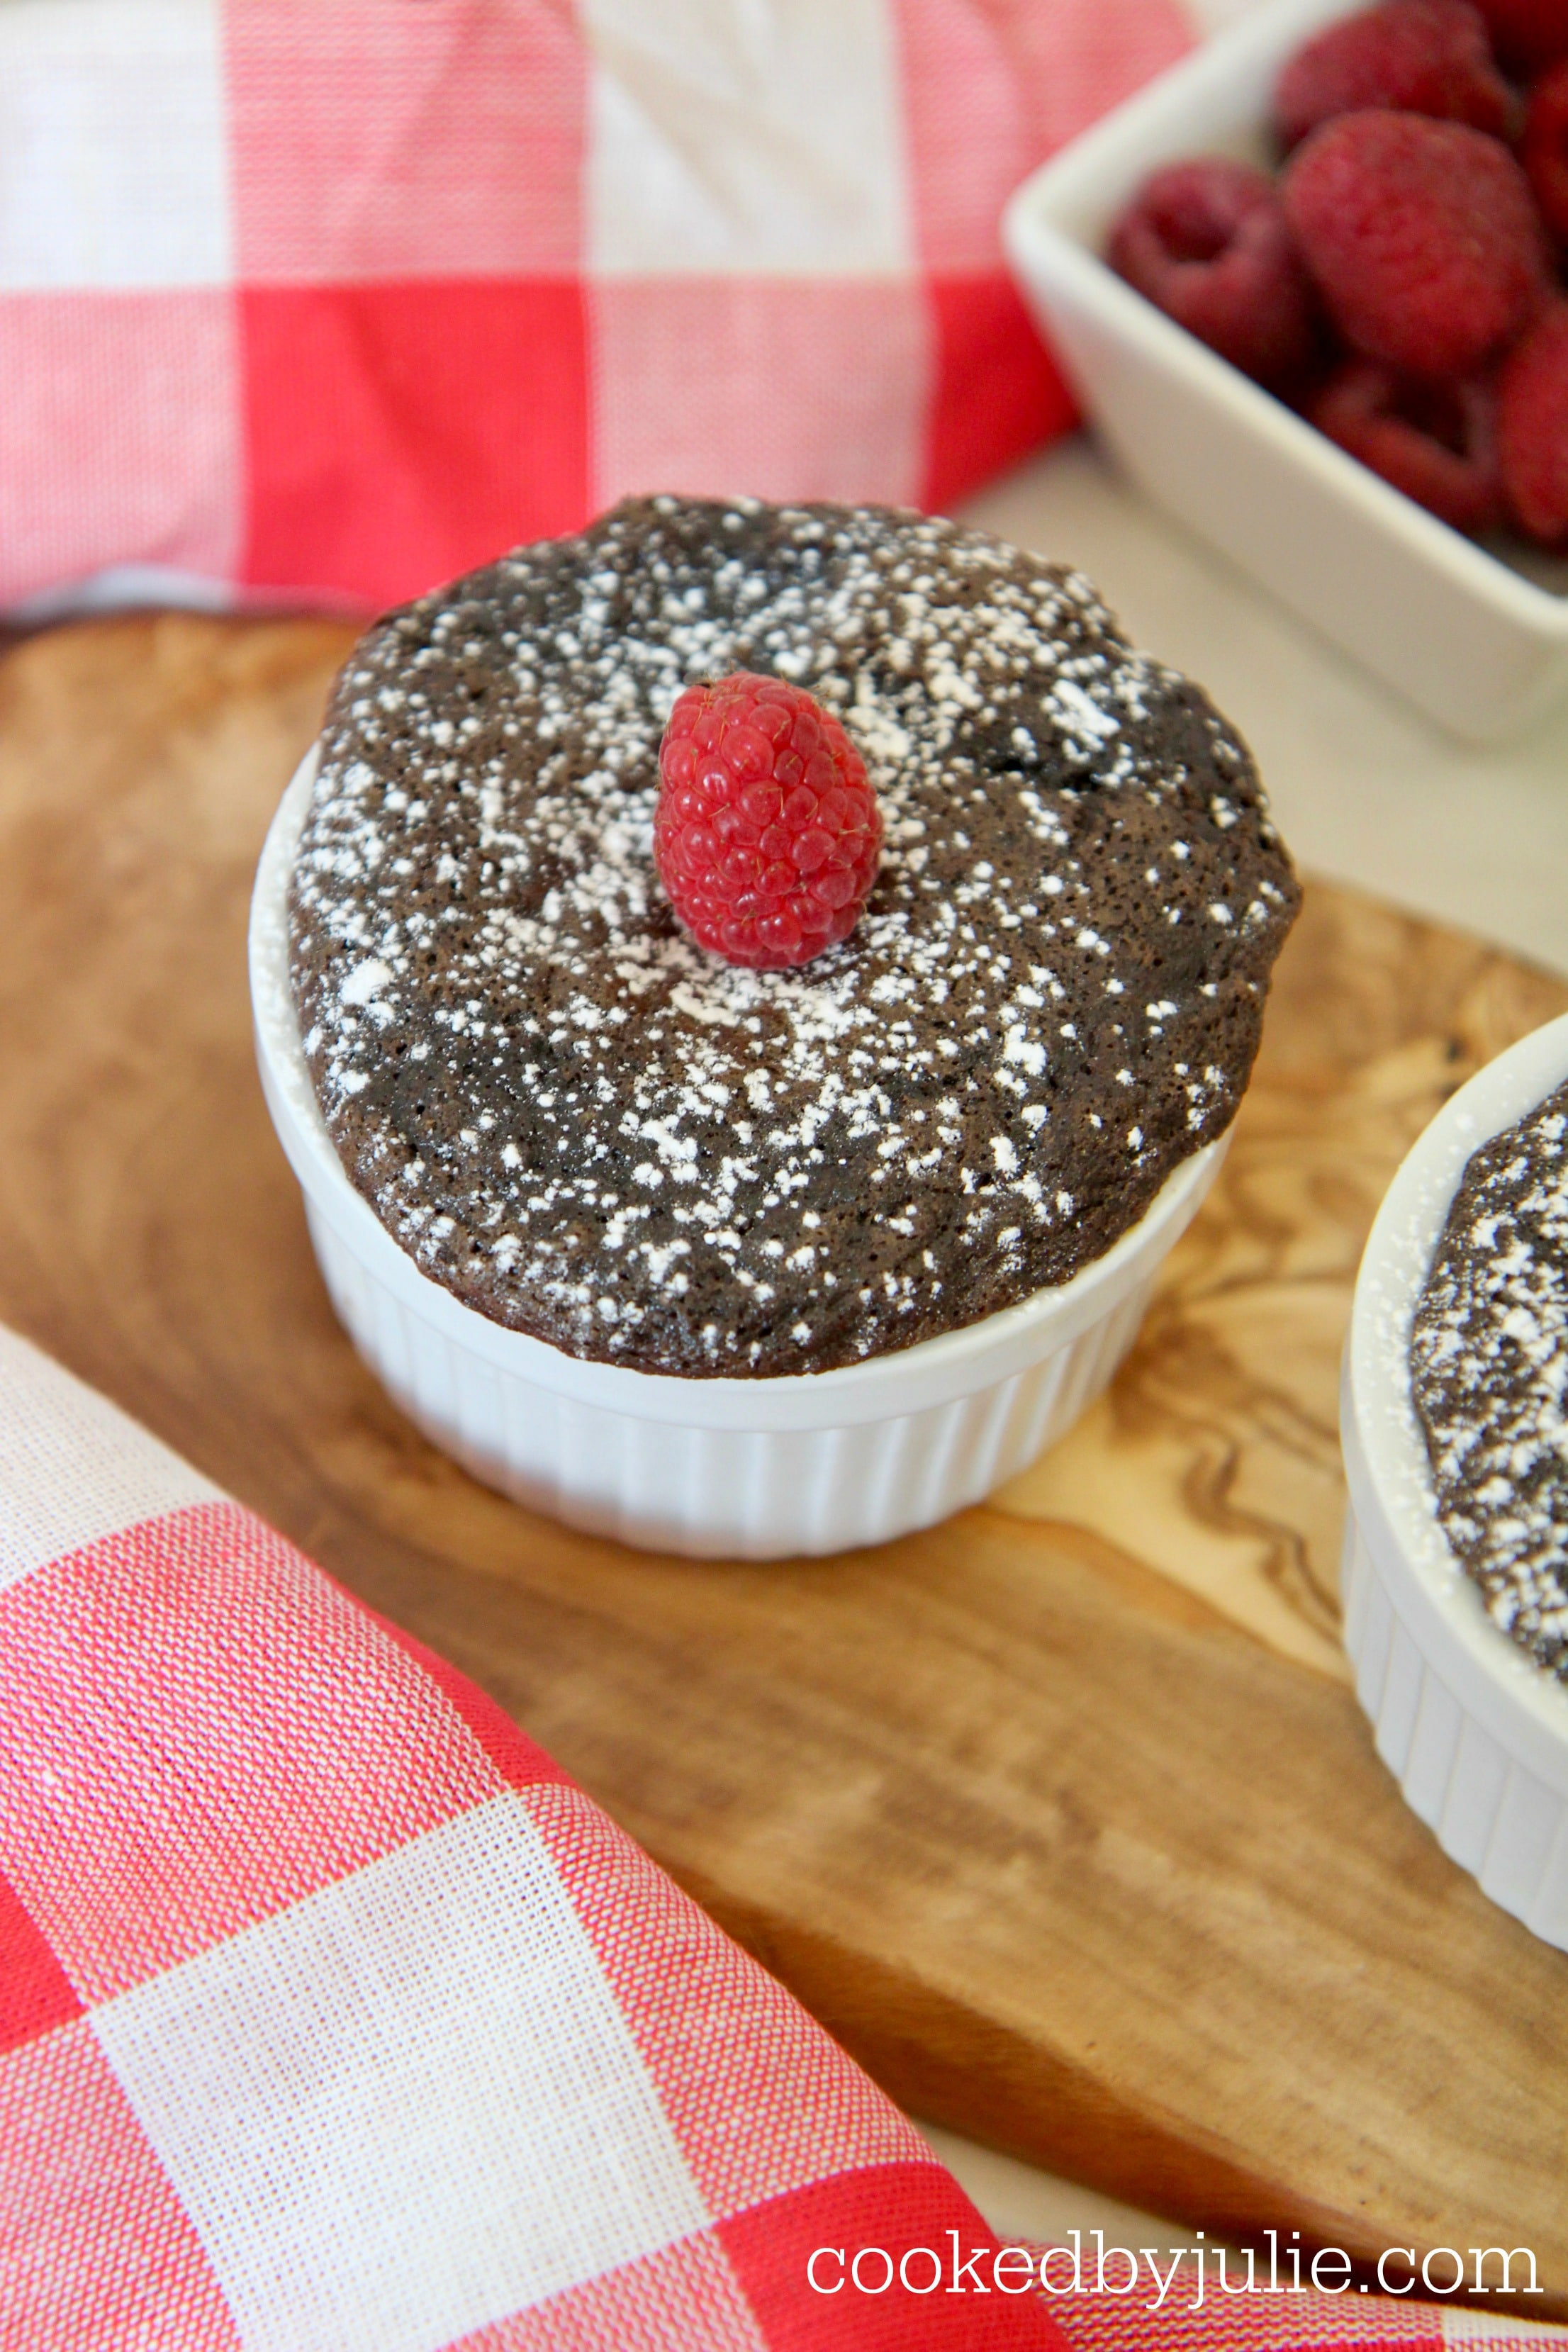 Mini Nutella cakes sprinkled with powdered sugar and topped with raspberries.